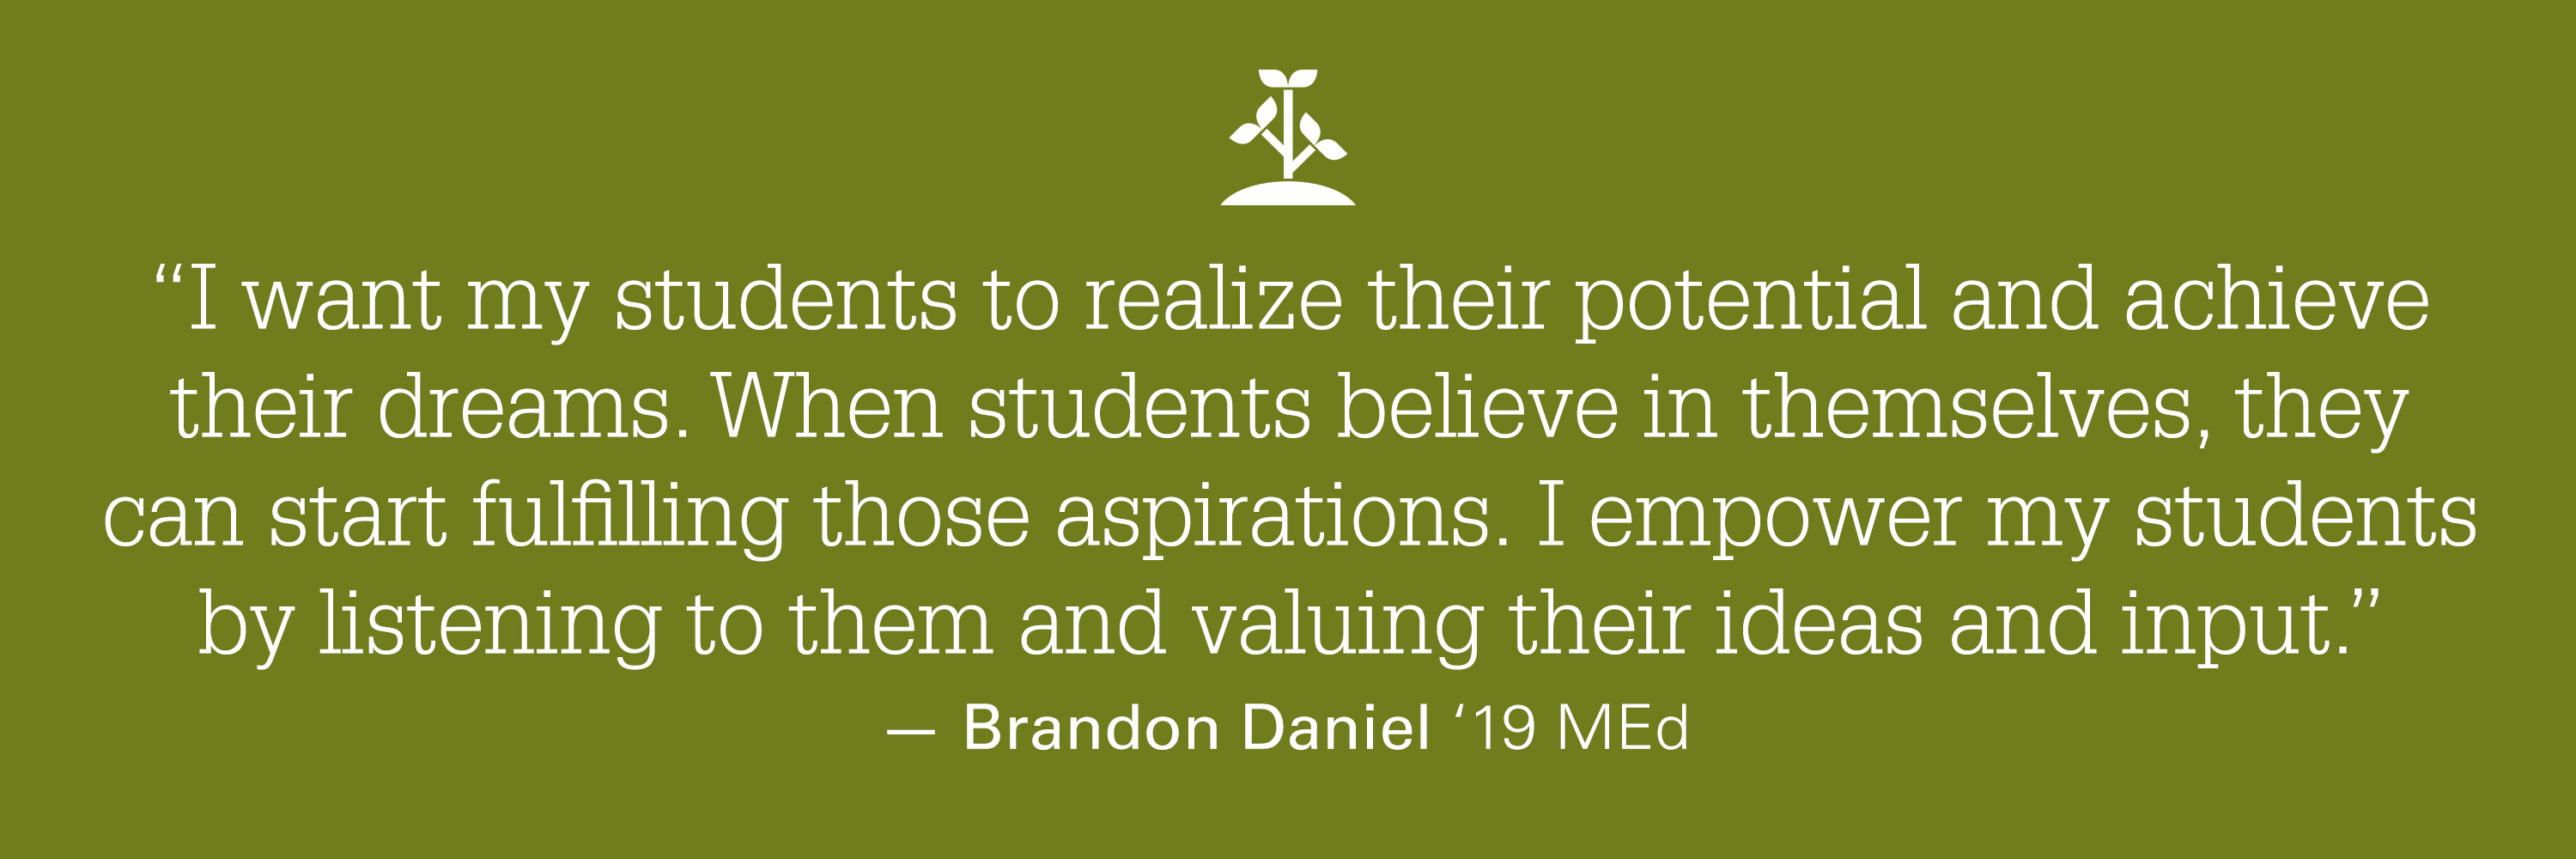 "A quote from Brand Daniels stating ""I want my students to realize their potential and achieve their dreams. When students believe in themselves, they can start fulfilling those aspirations. I empower my students by listening to them and valuing their ideas and input."""